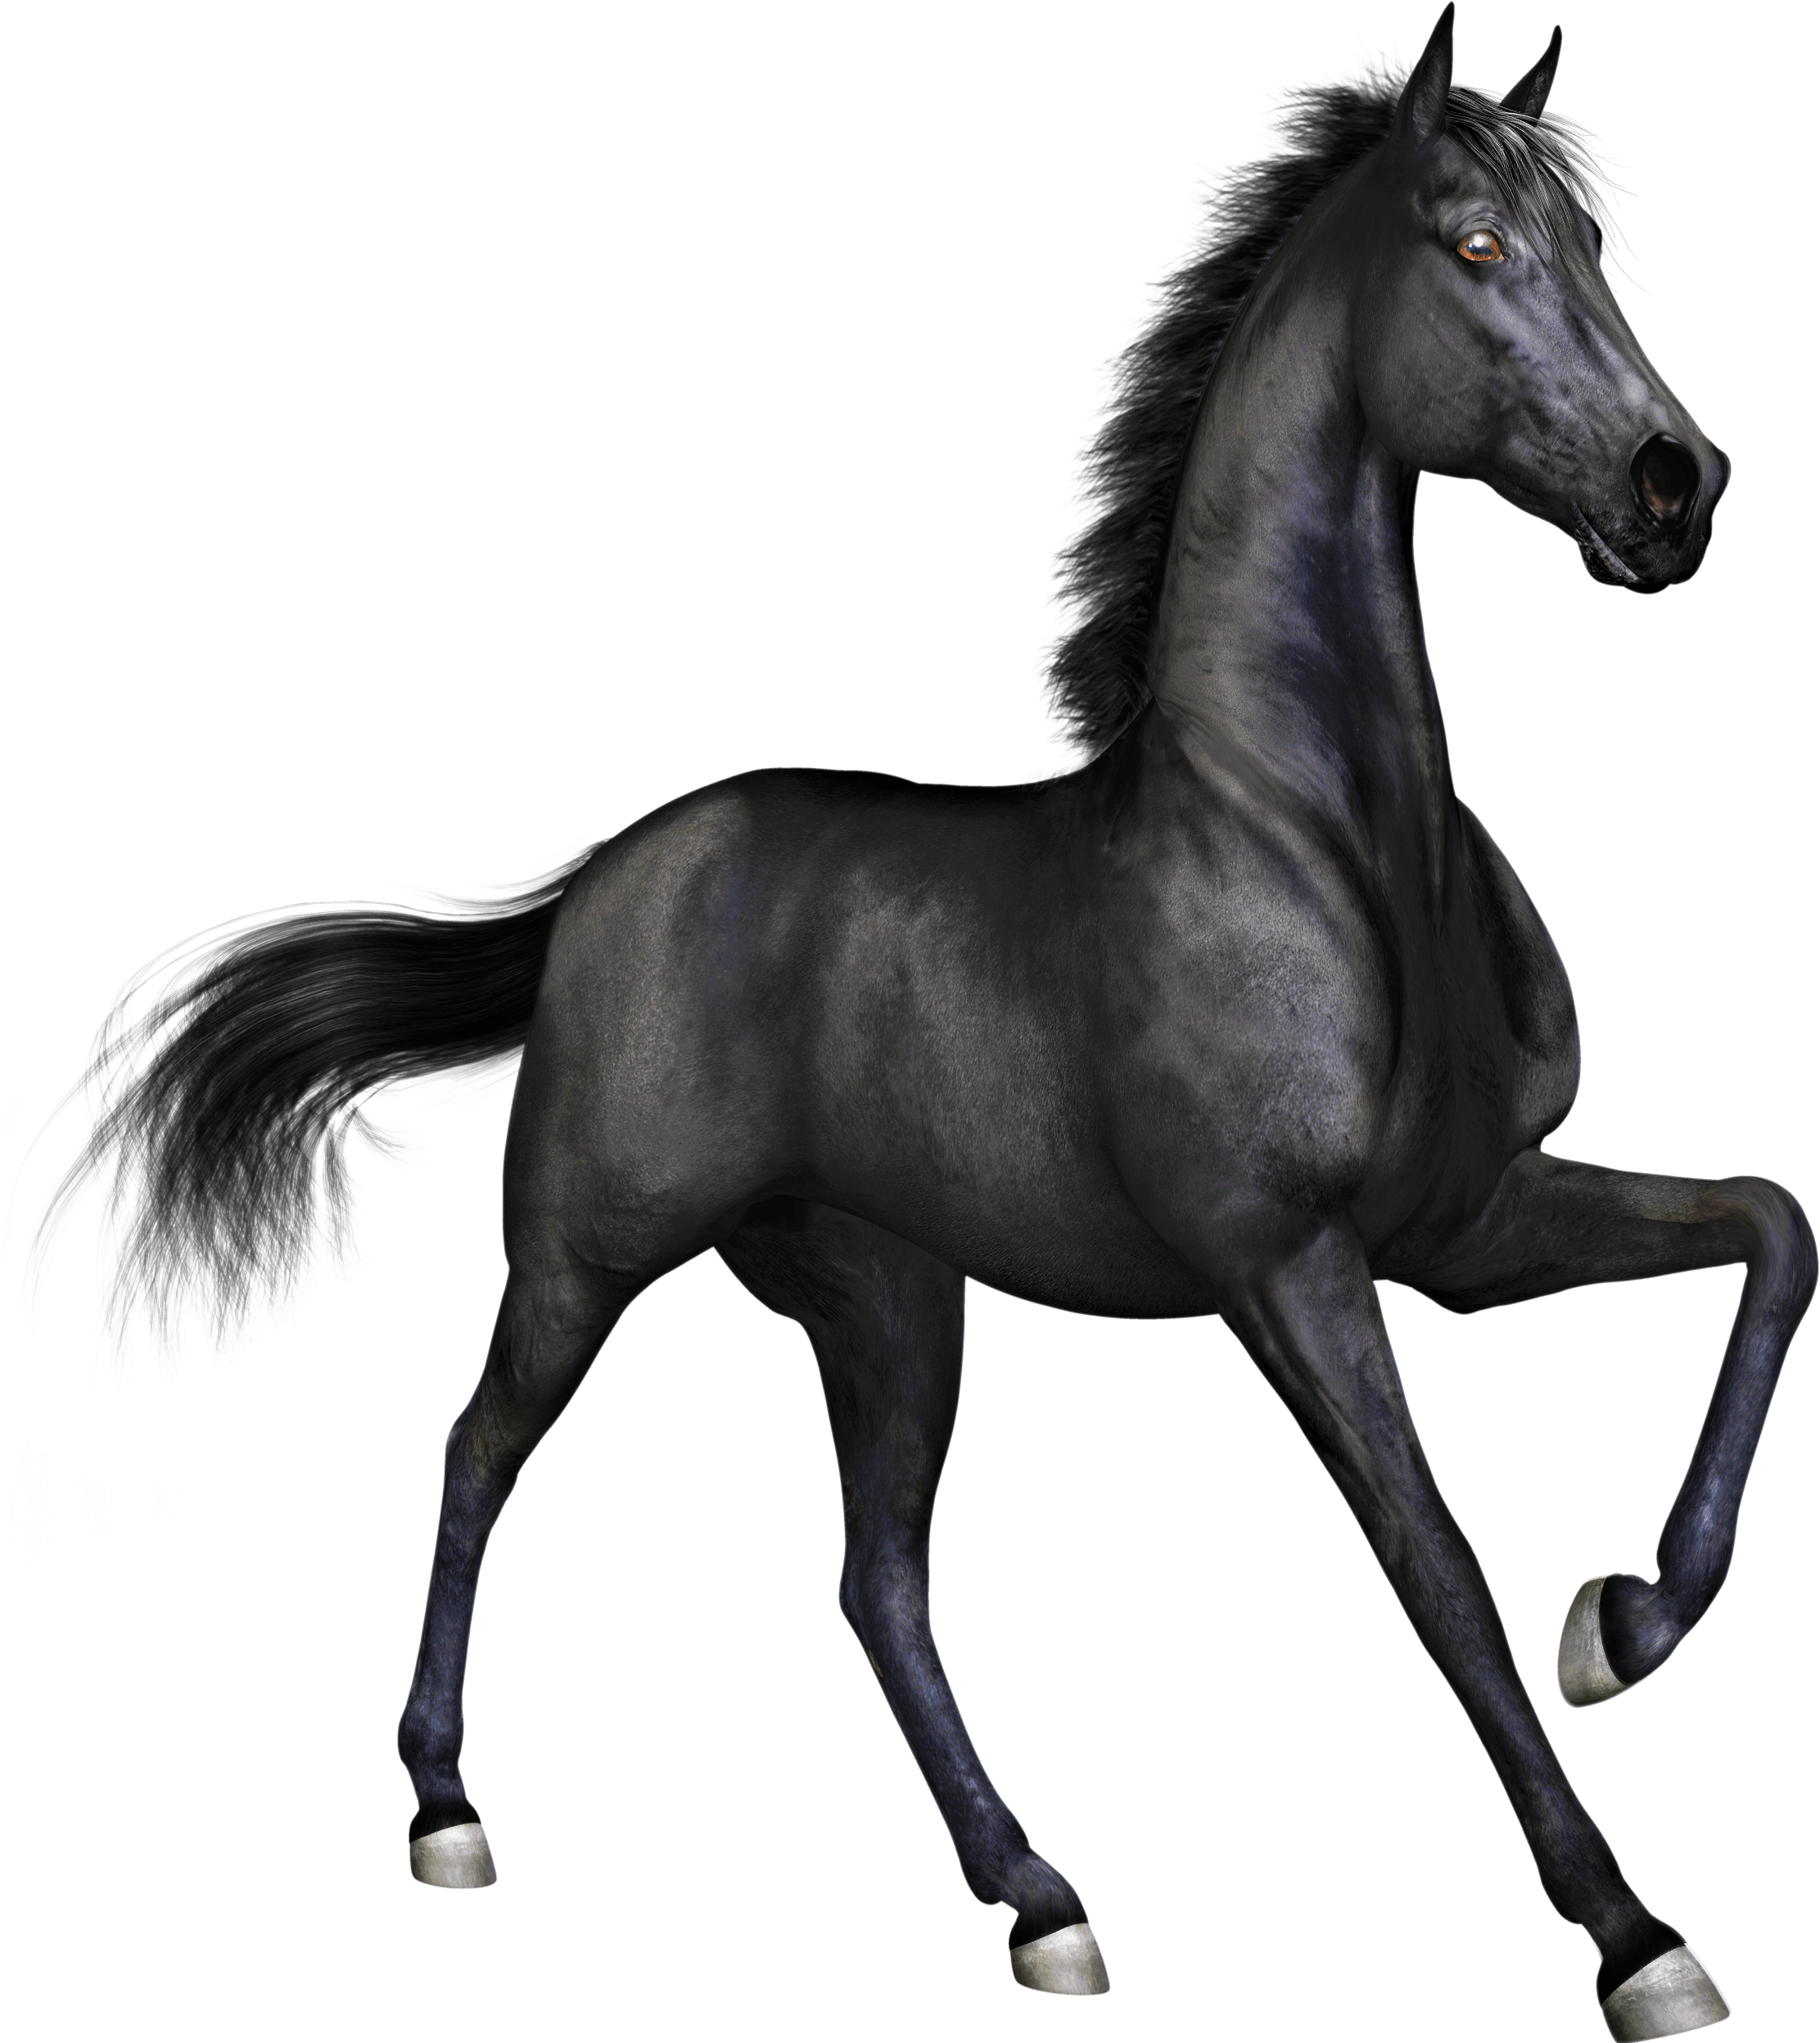 Black horse png. Race transparent stickpng